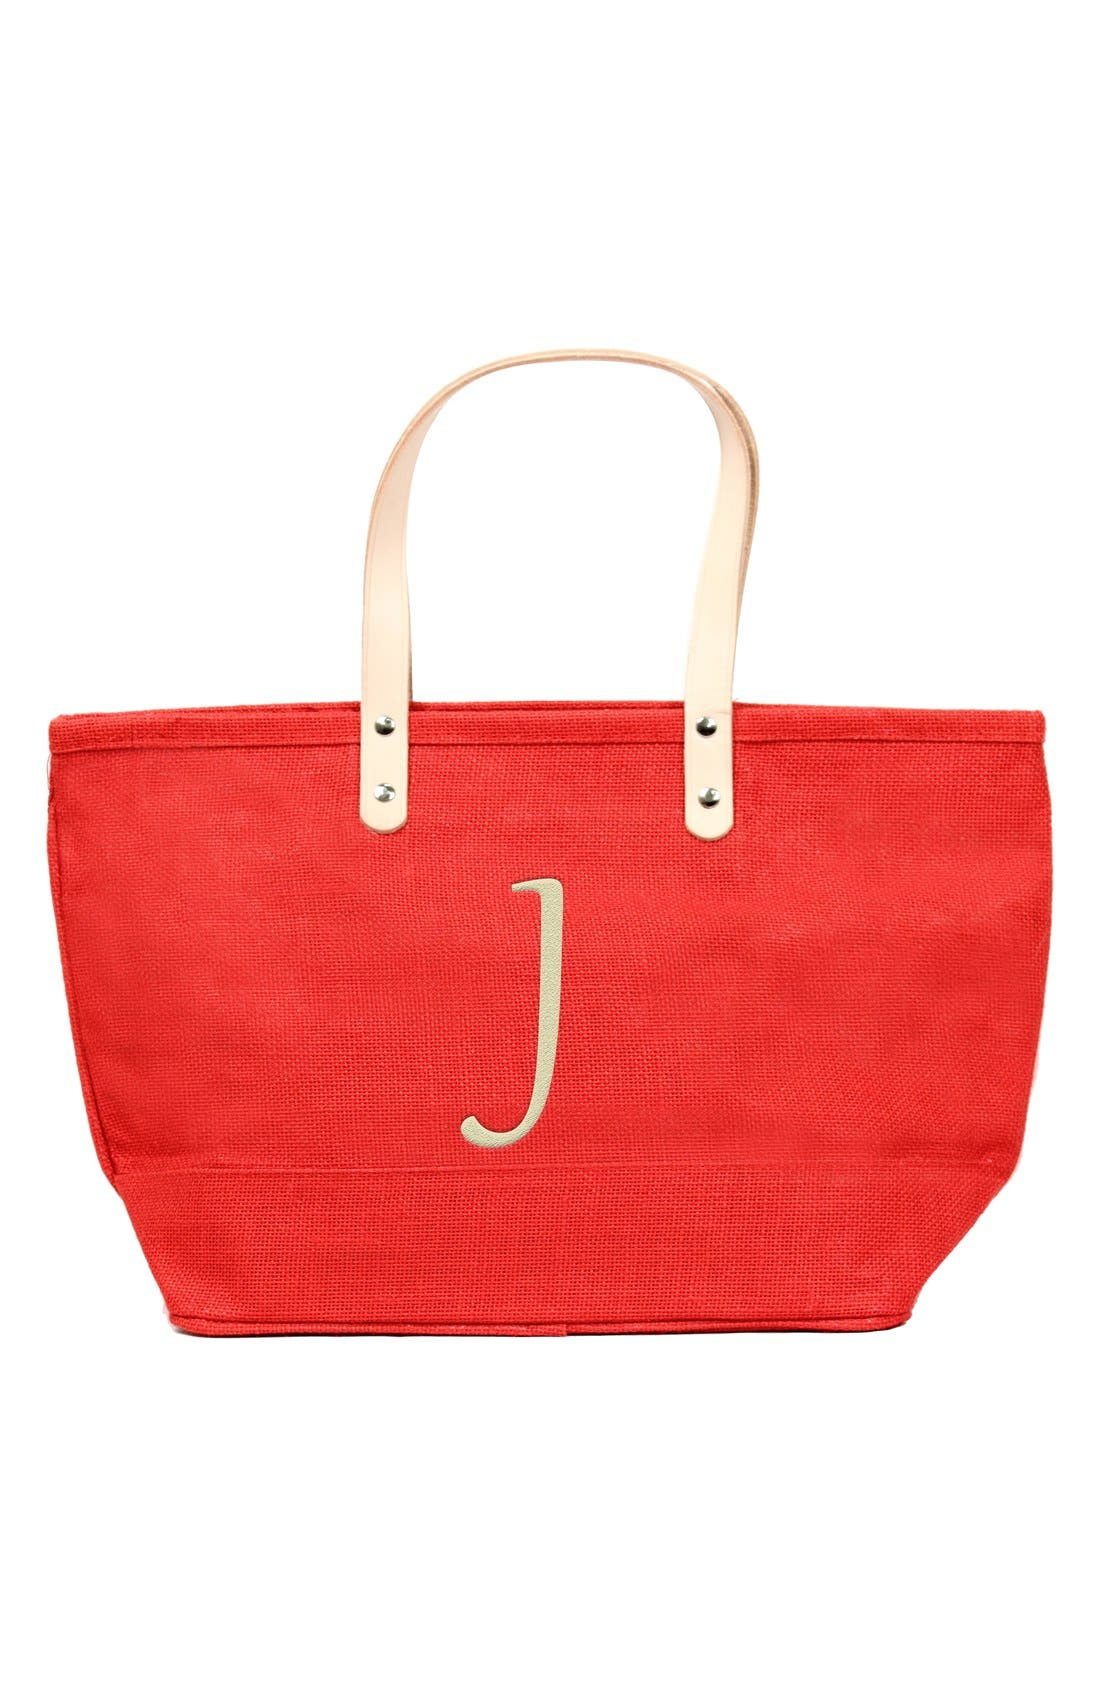 Main Image - Cathy's Concepts 'Nantucket' Monogram Jute Tote